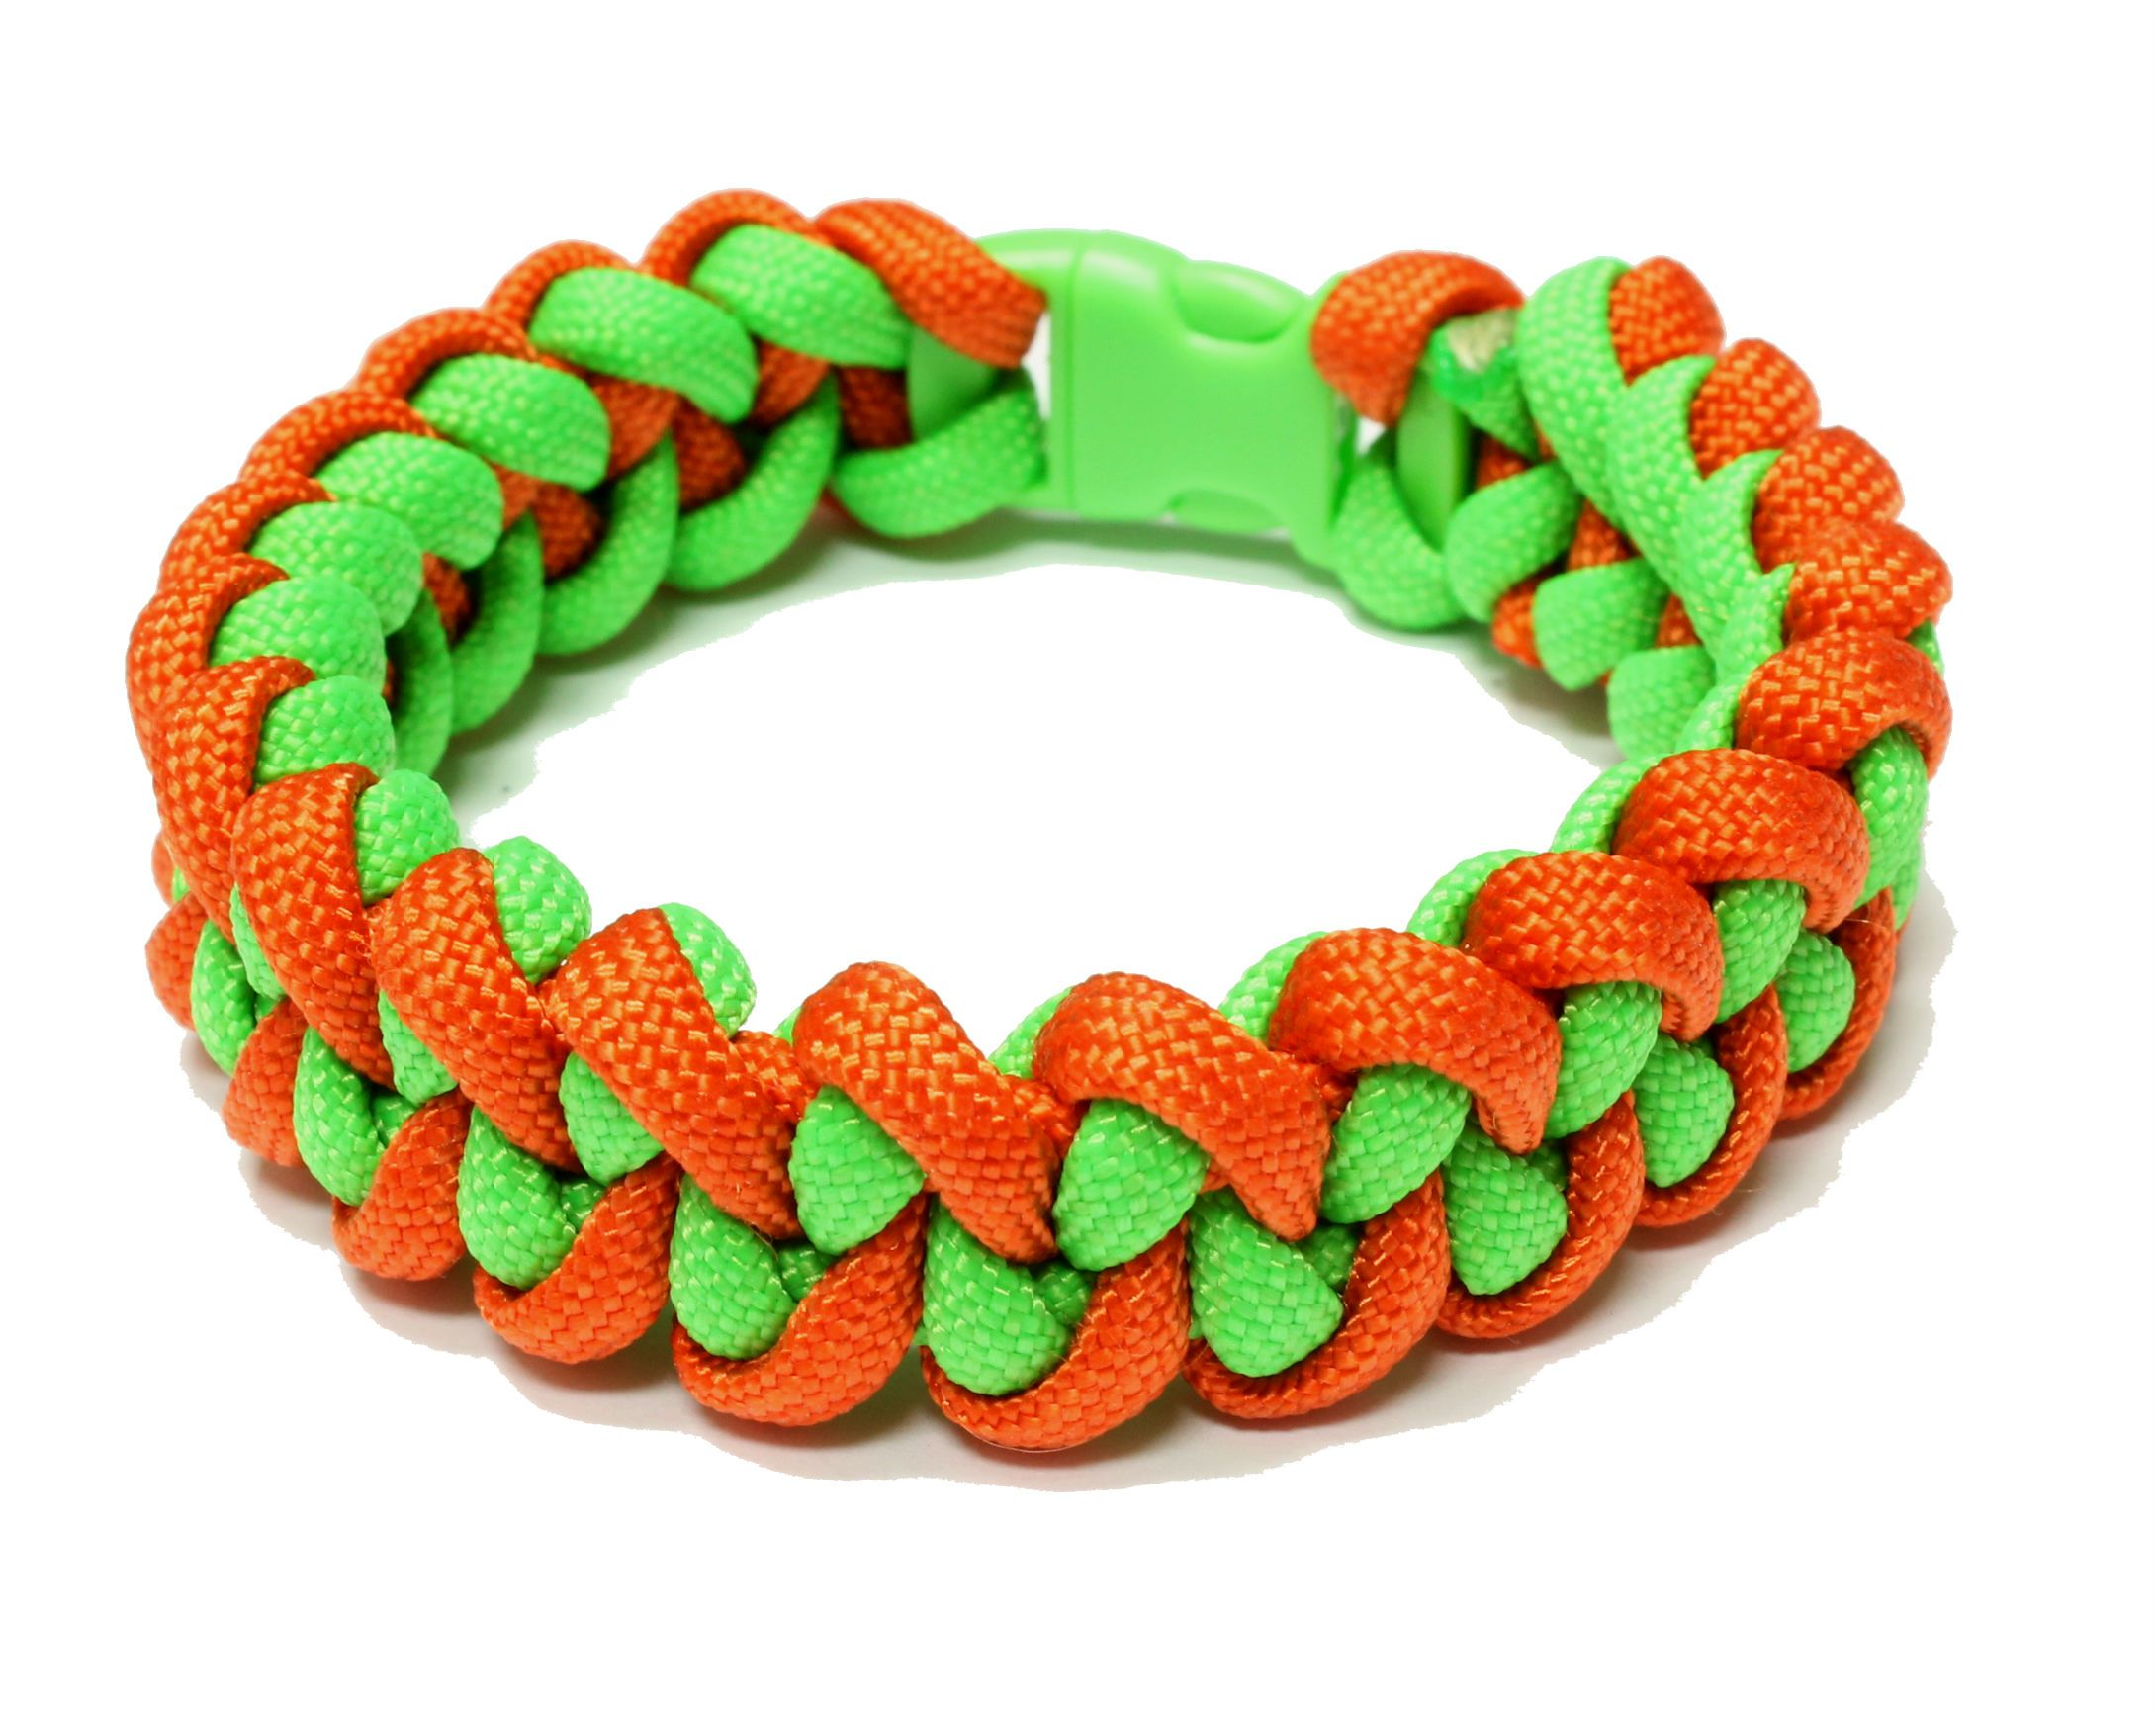 Printable Paracord Bracelet Instructions Pdf